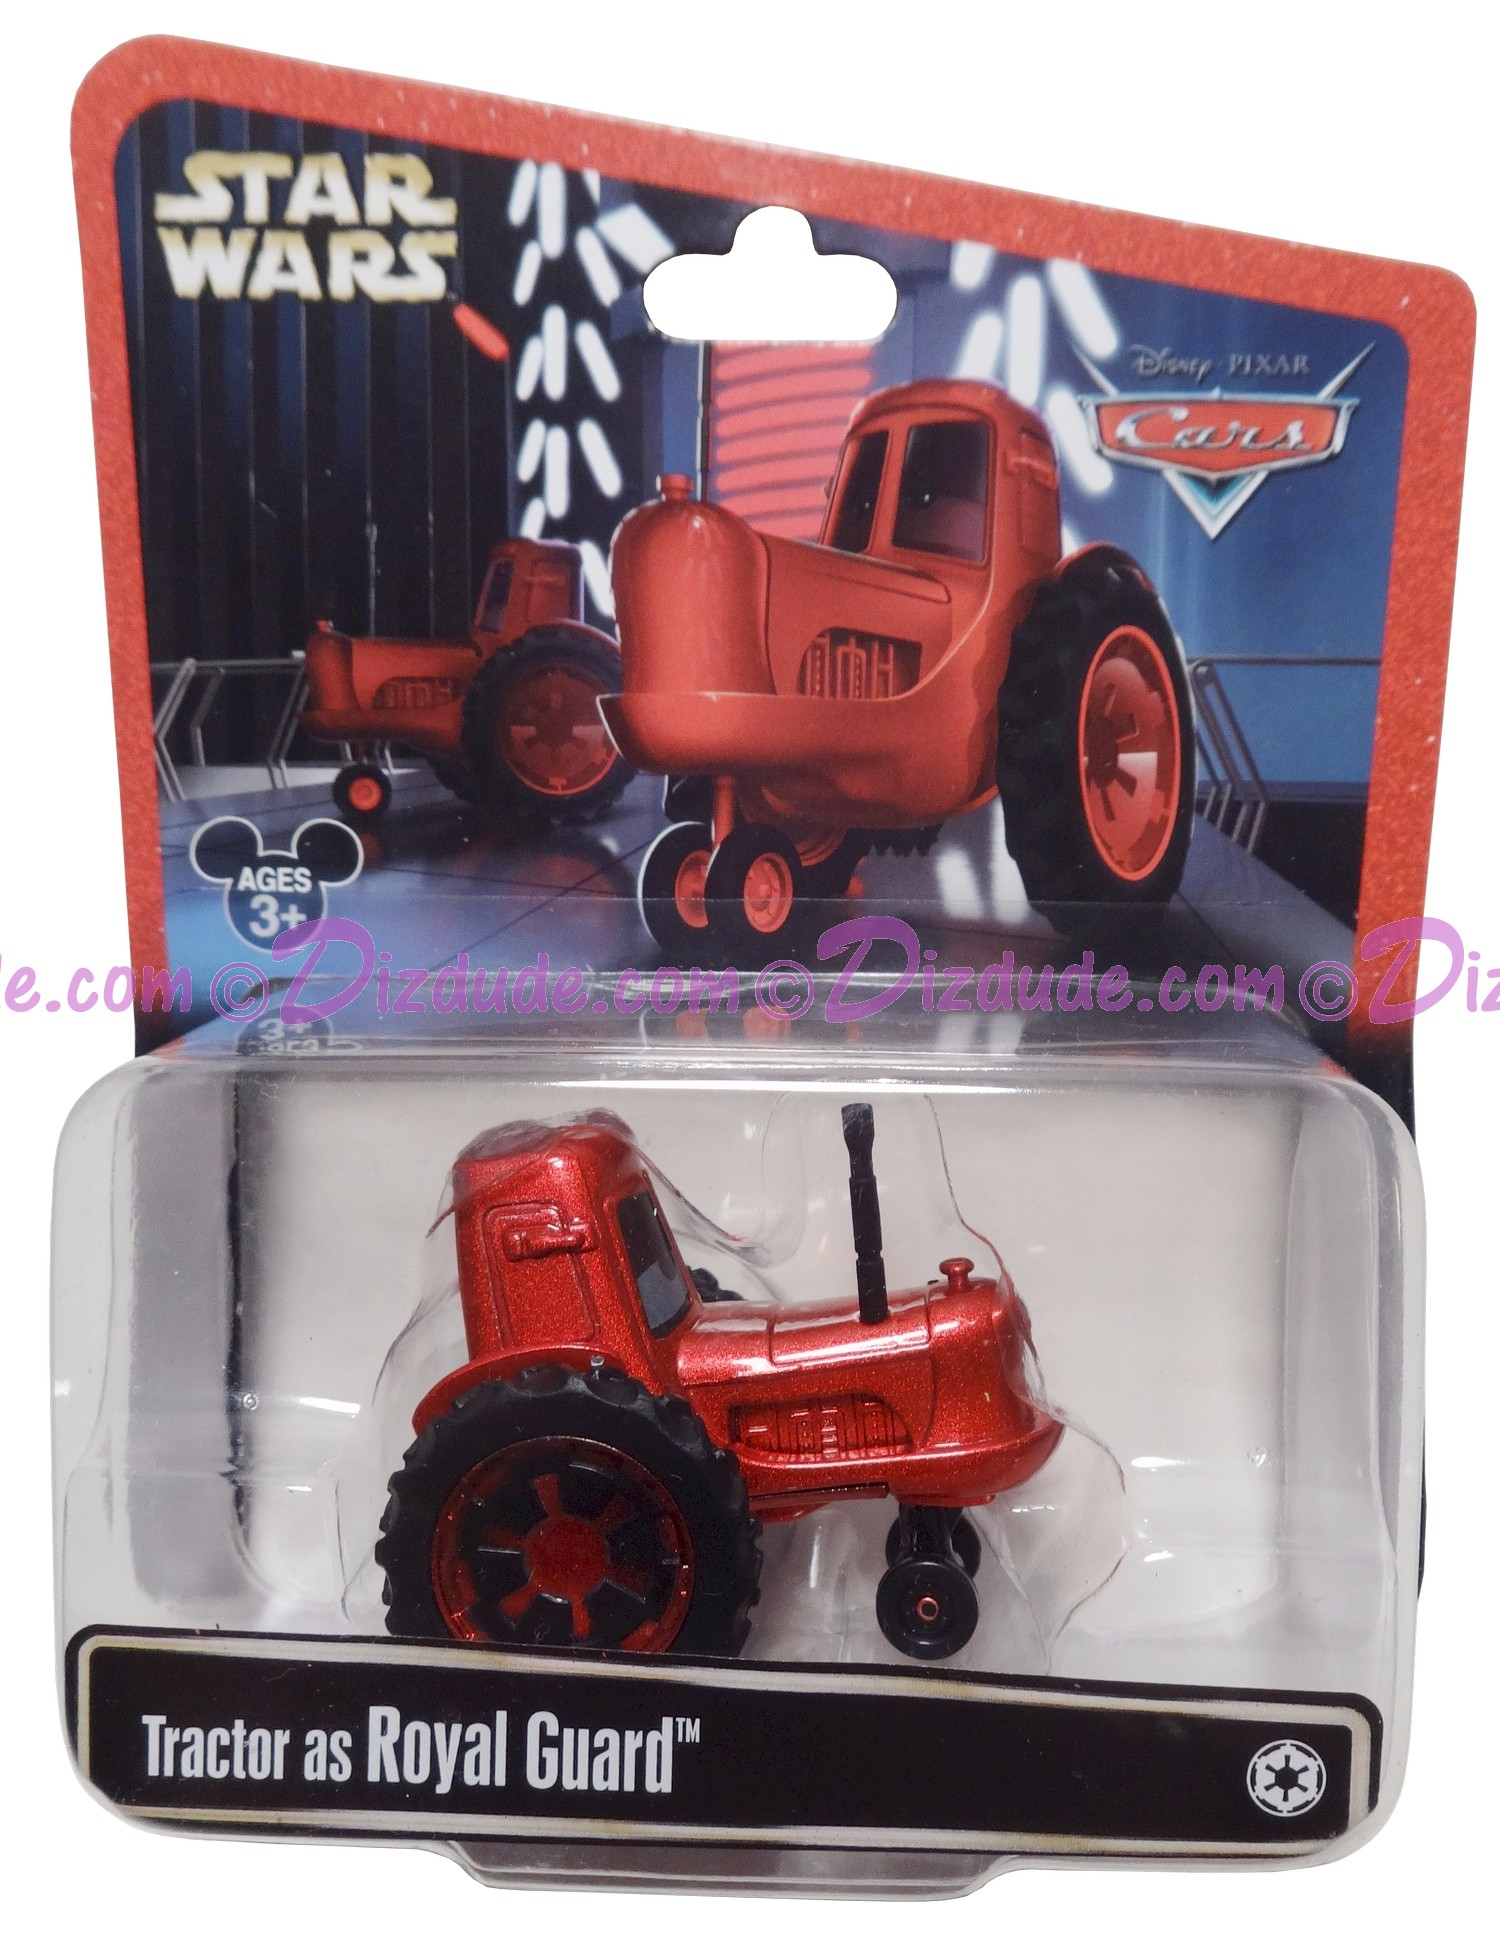 "Disney Pixar ""Cars"" as LucasFilm ""Star Wars"" Tractor as Royal Guard - Series 3 ~ Exclusive Star Wars Weekends 2015 © Dizdude.com"